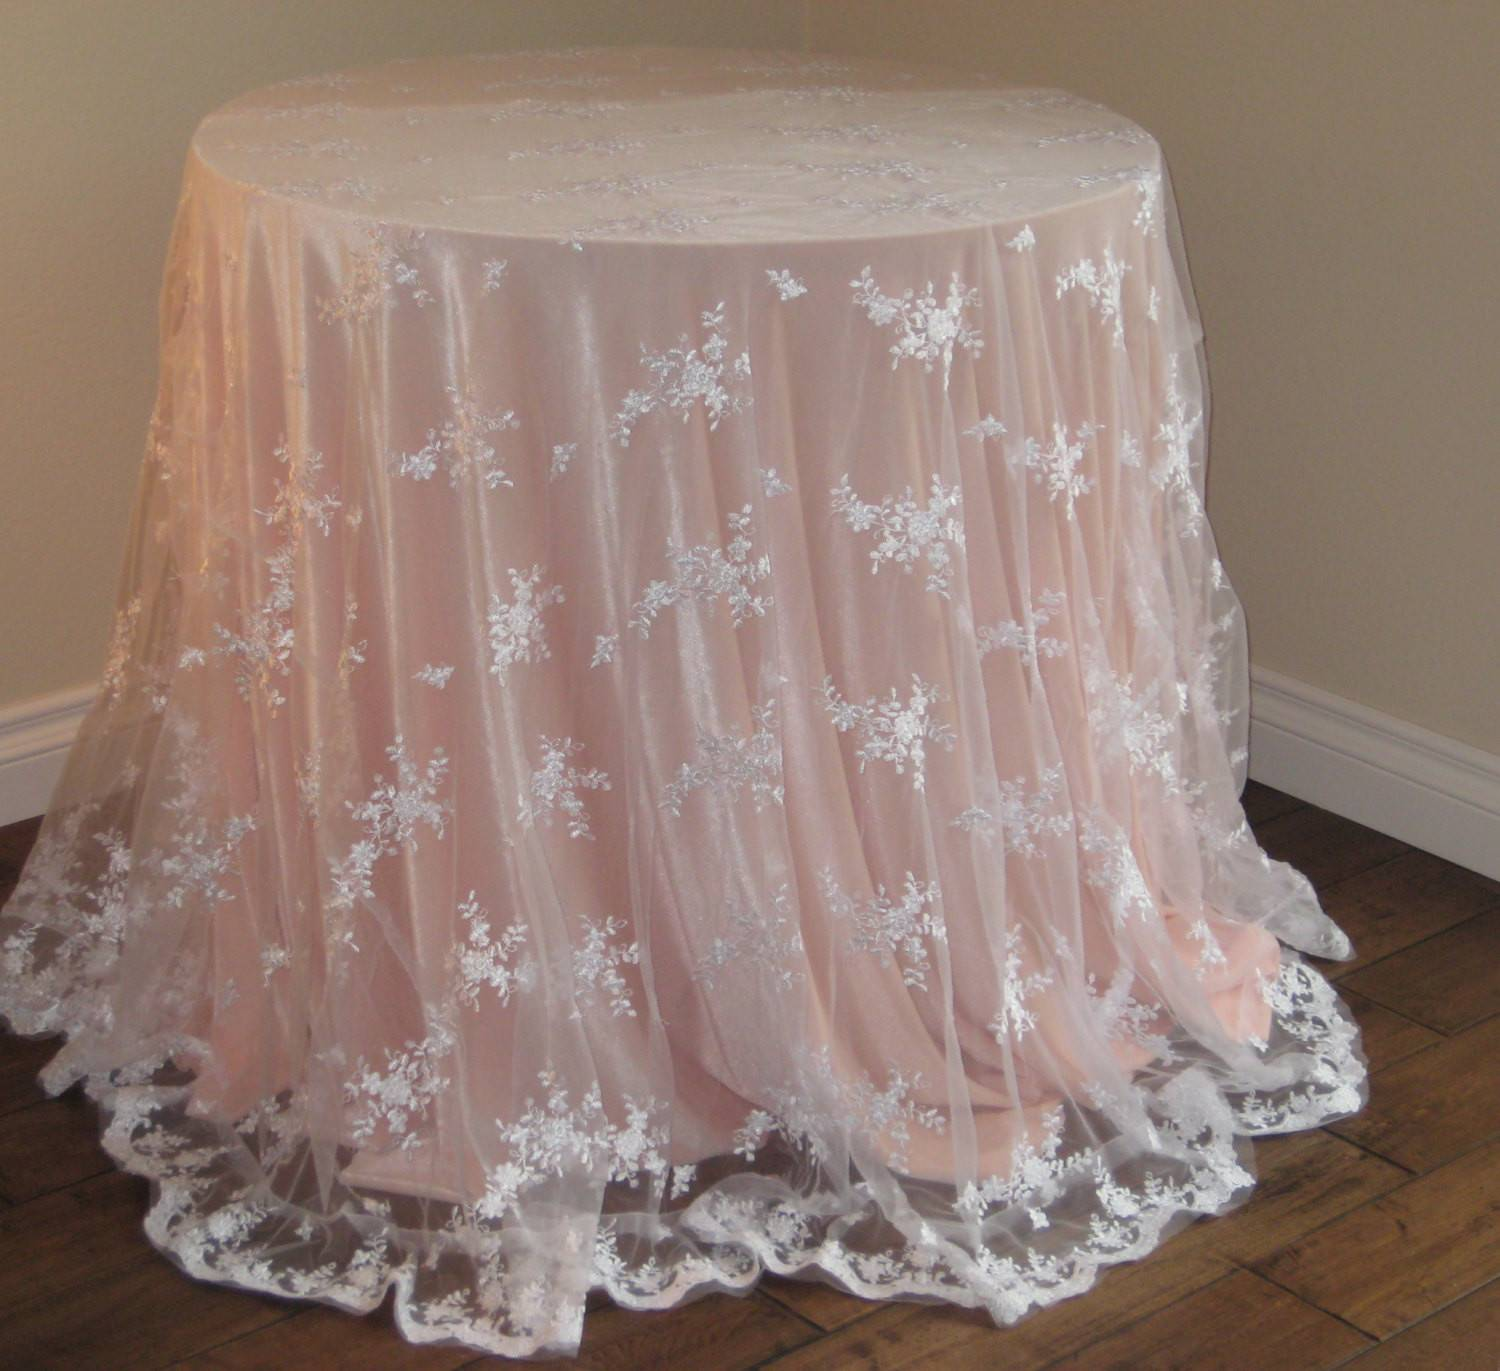 Lace Wedding Tablecloth White Moderncelebrations Etsy